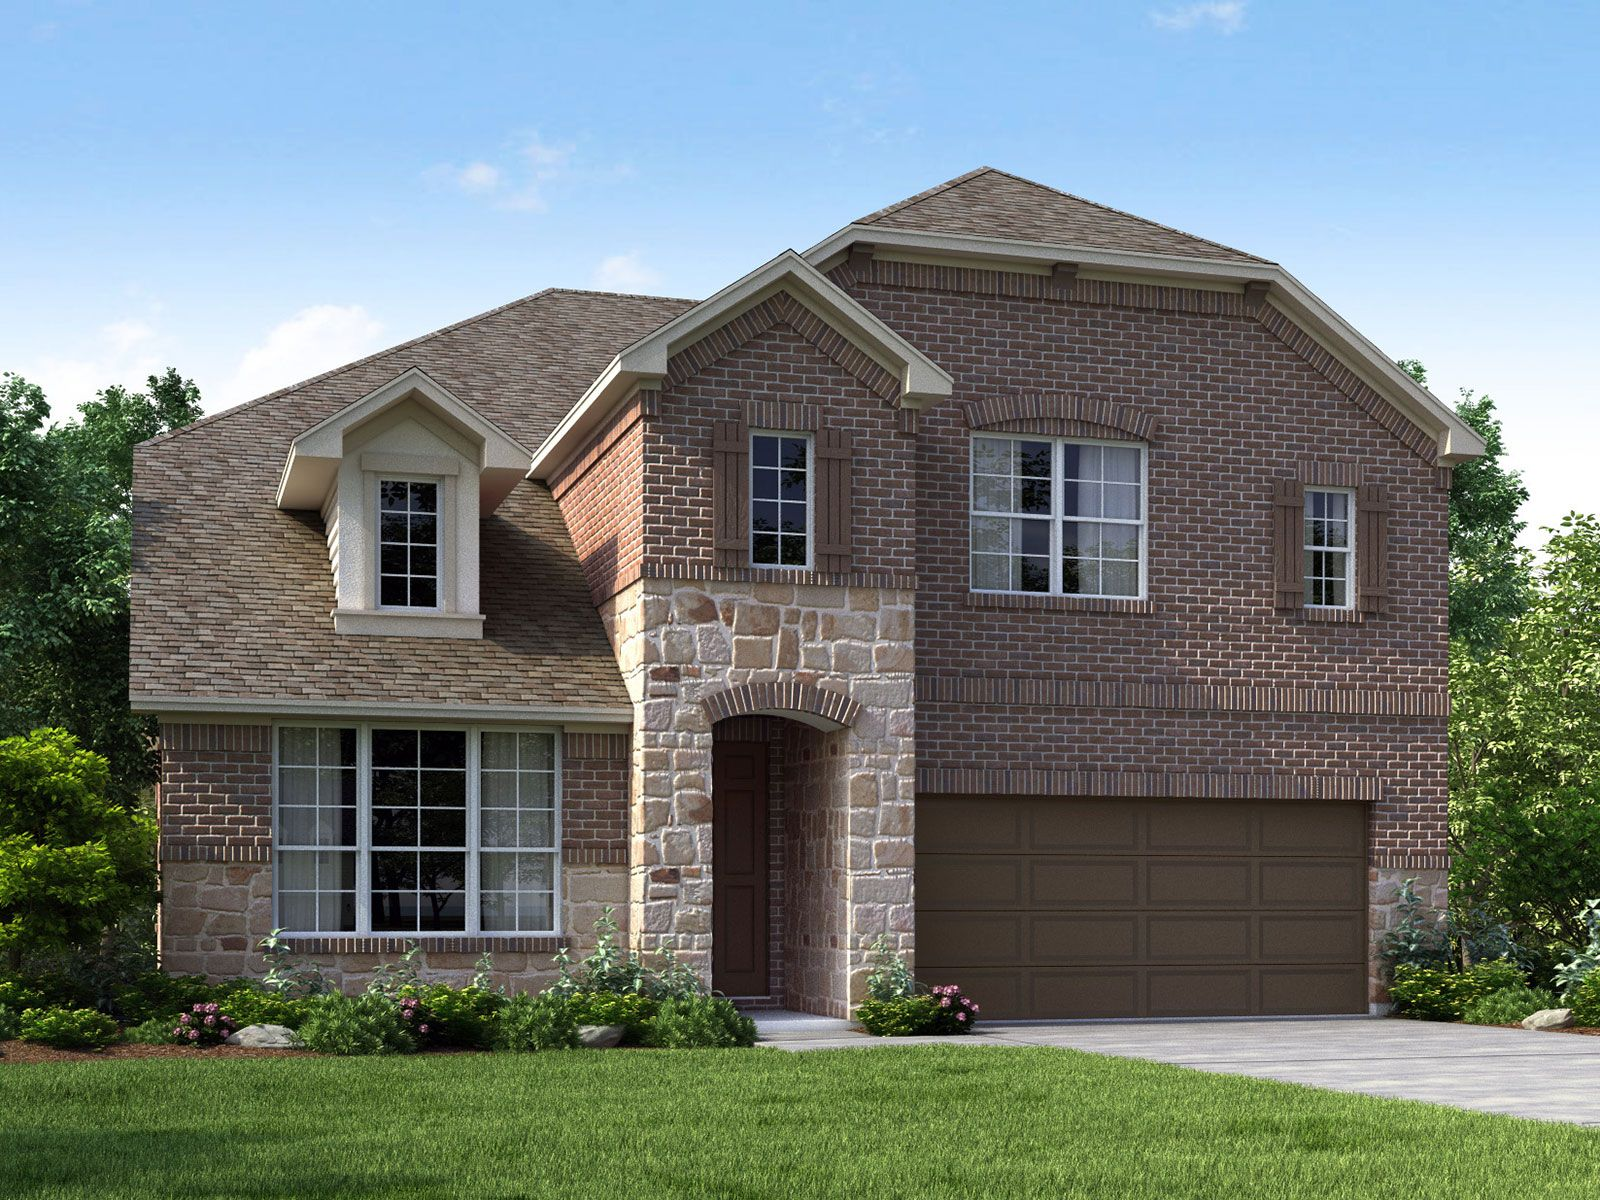 Here's the Brand-new Picture Of Patio Homes for Sale Pearland Tx